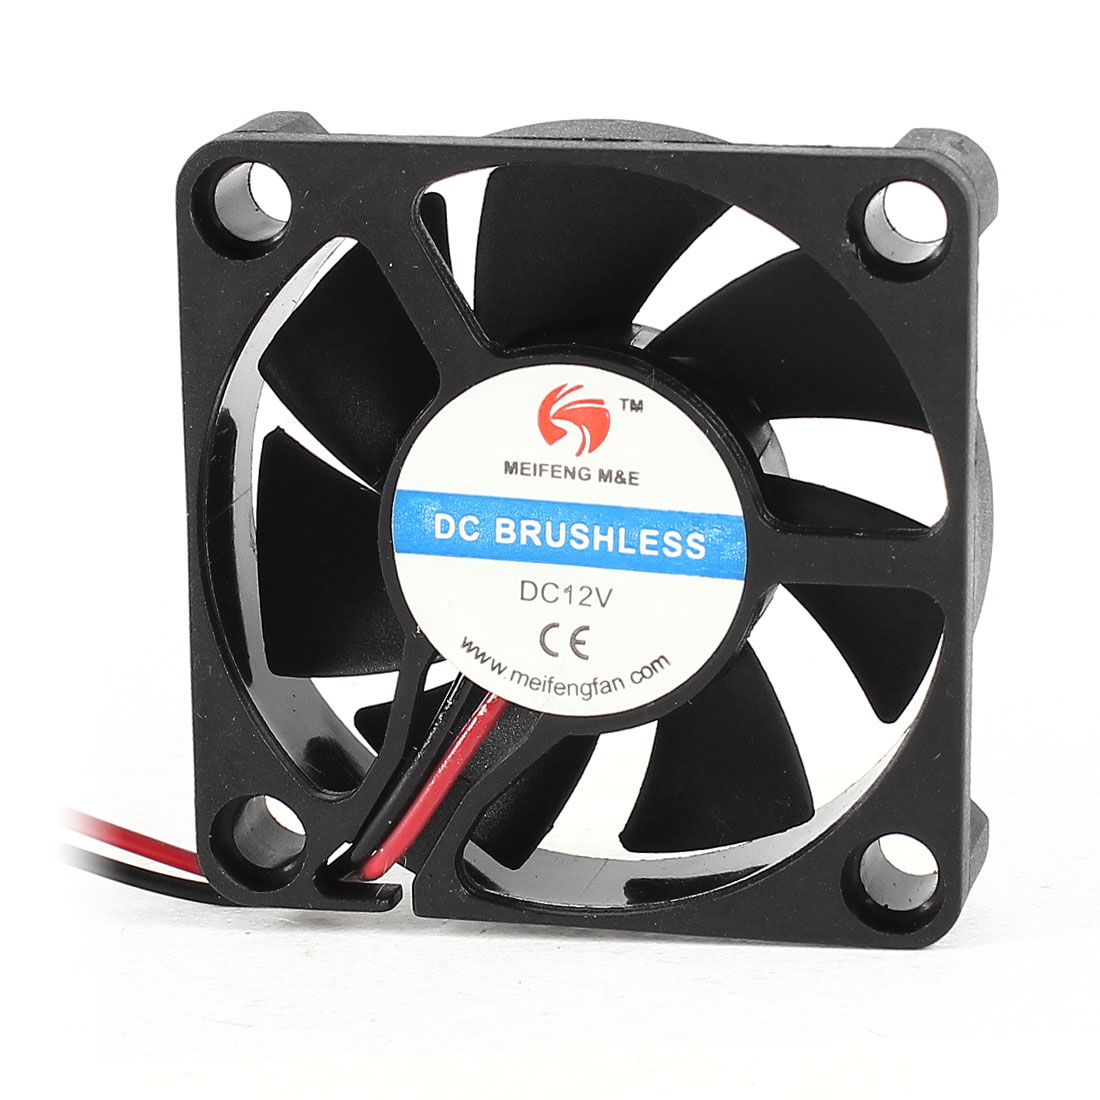 45mm x 45mm x 10mm 4510 2pole 12V DC Brushless Cooling Fan for PC Case Computer CPU Cooler